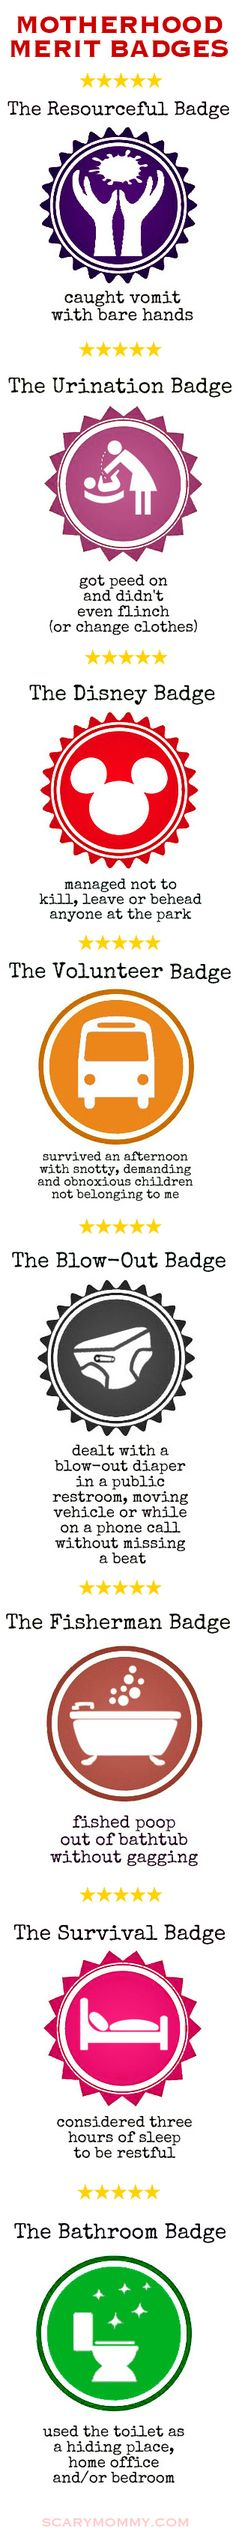 Motherhood Merit Badges. So true. I have earned all but 2, the Fisherman and Disney badges